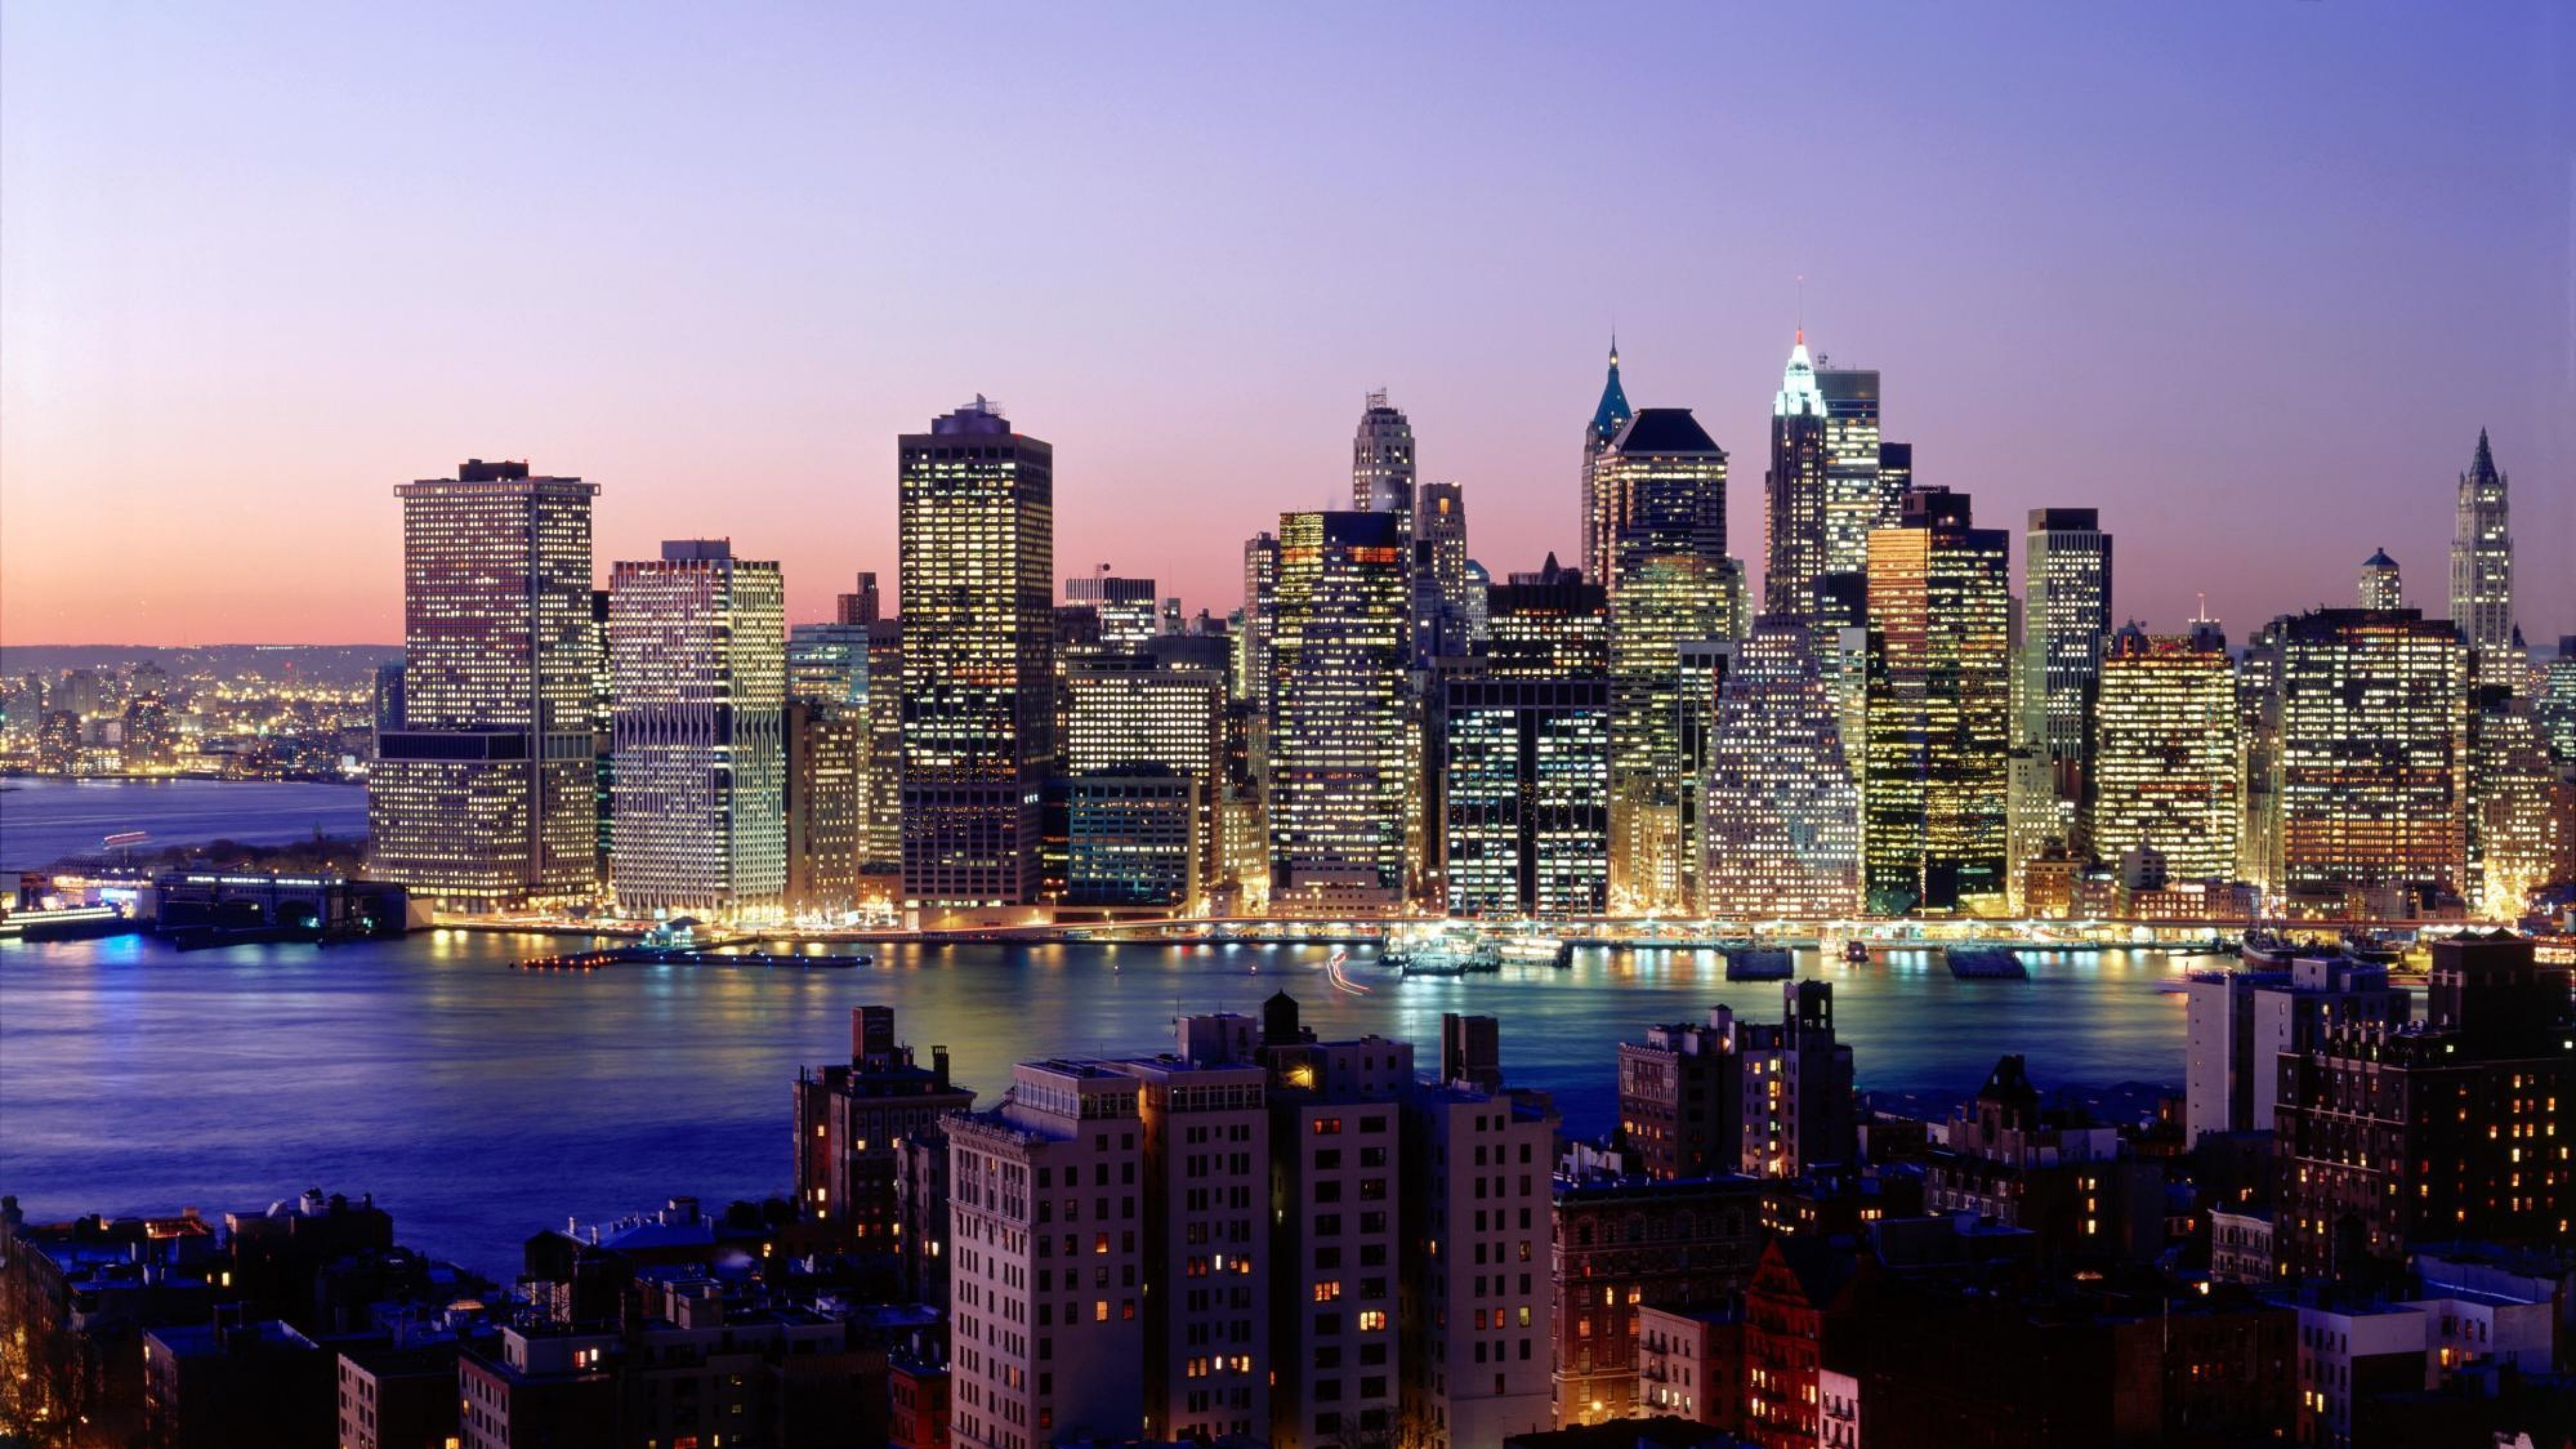 3840x2160  Wallpaper new york, skyscrapers, river, night, lights, city